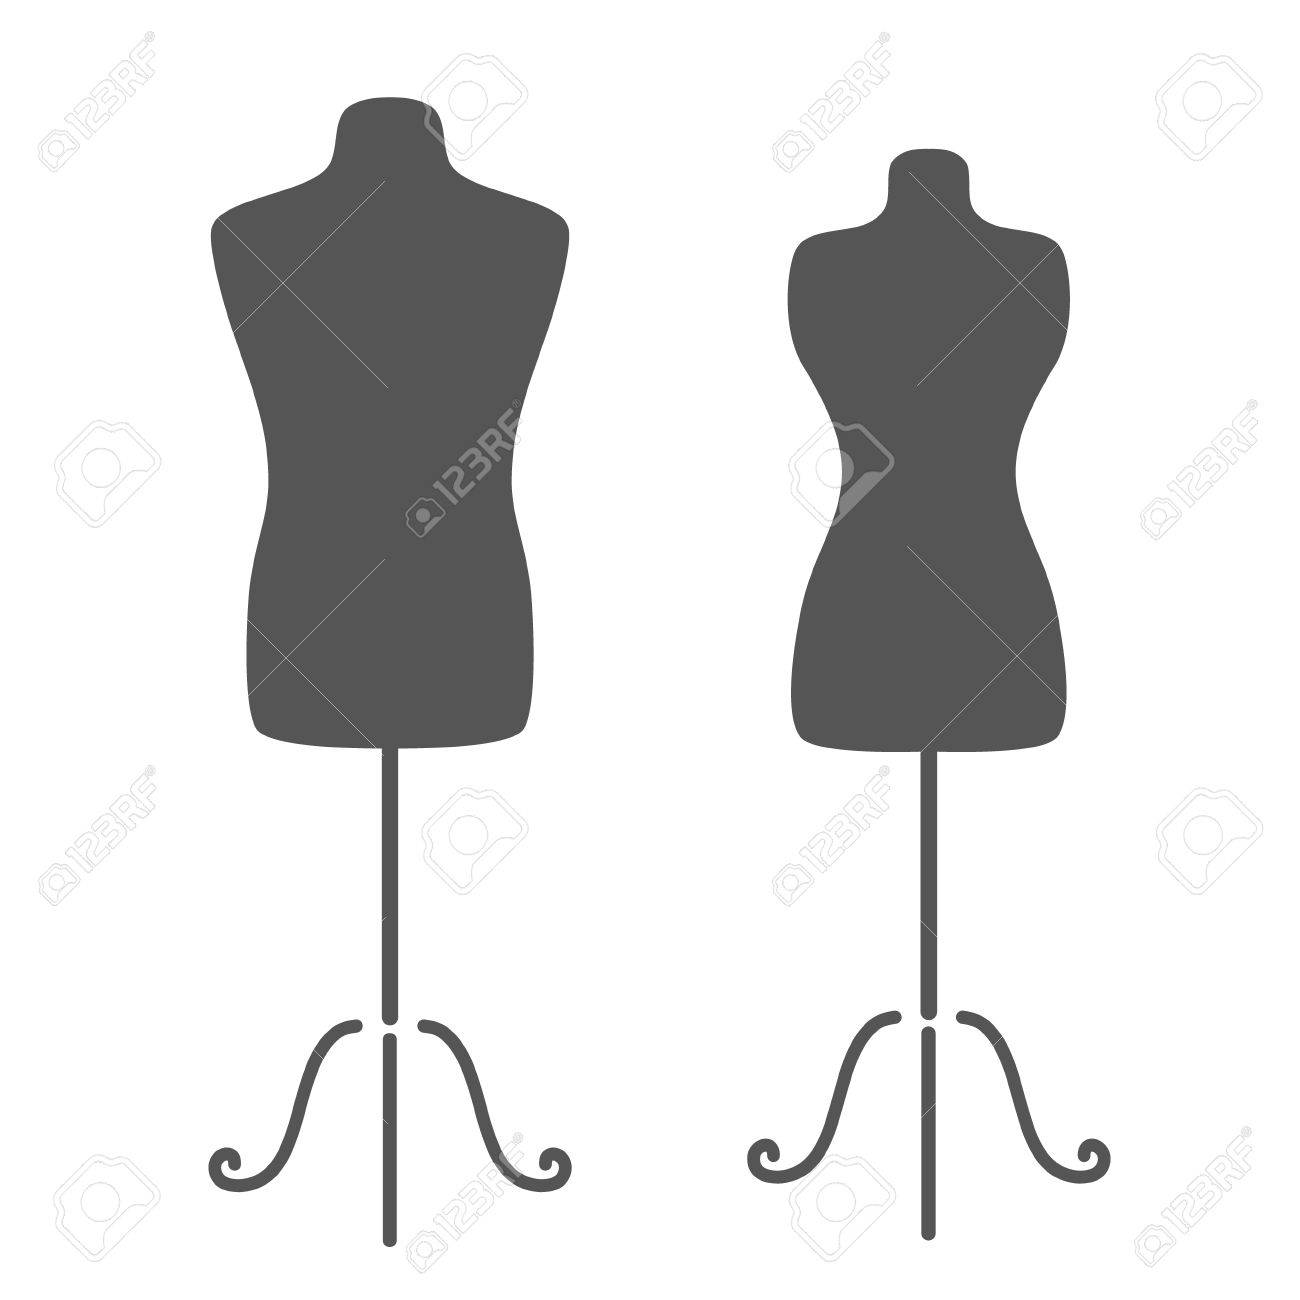 Vintage Tailor\'s Mannequin For Female And Male Body. Design Template ...